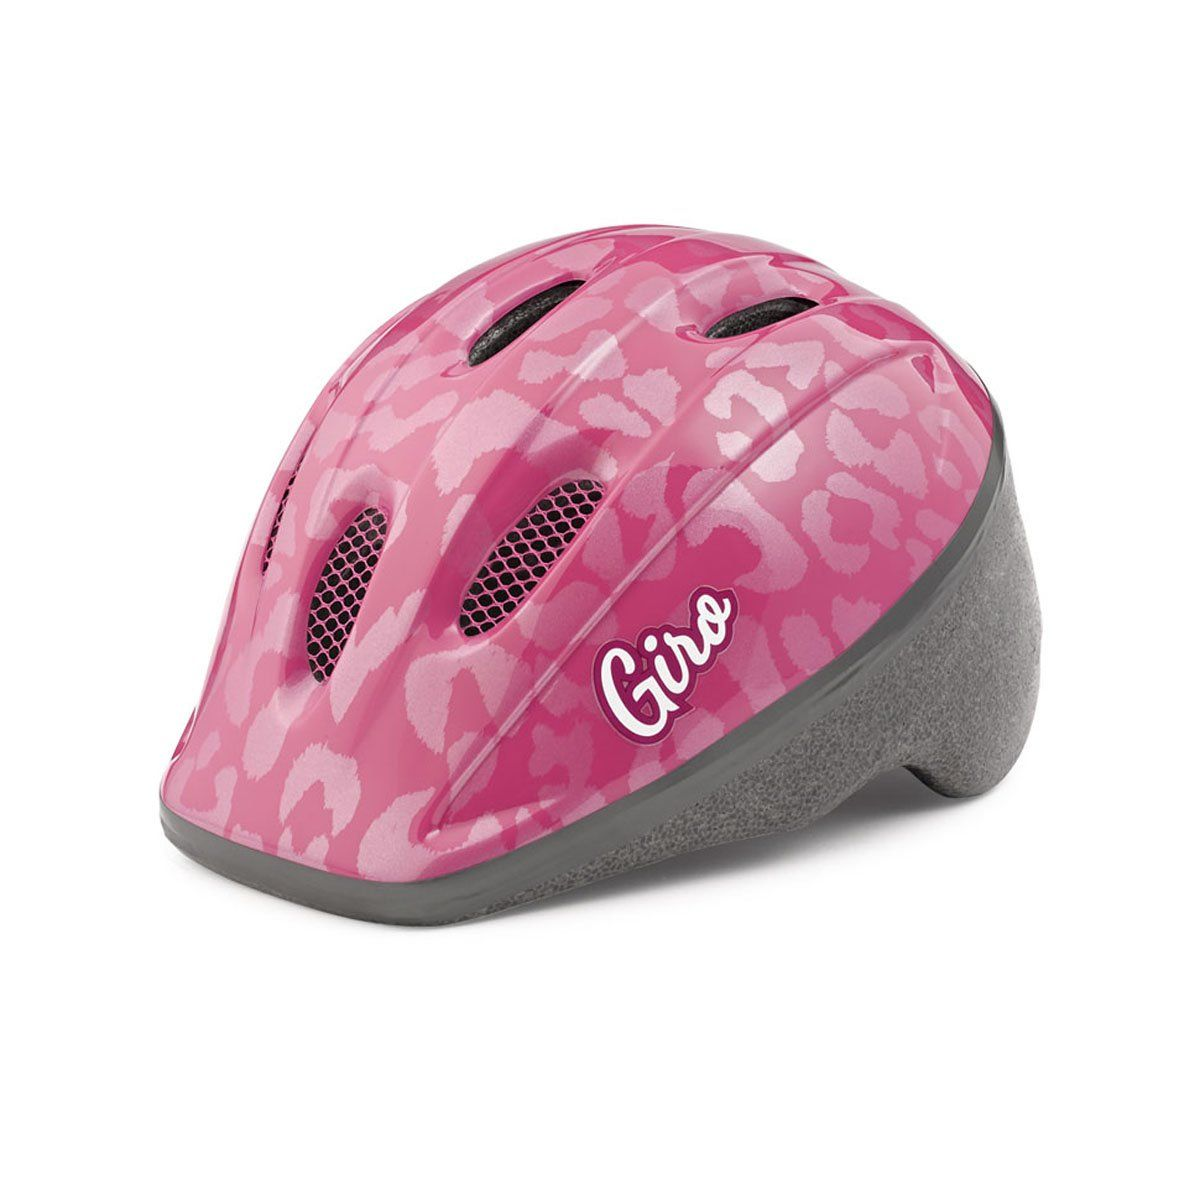 Amazon Com Giro Me2 Cycling Helmet Infant Universal Fit